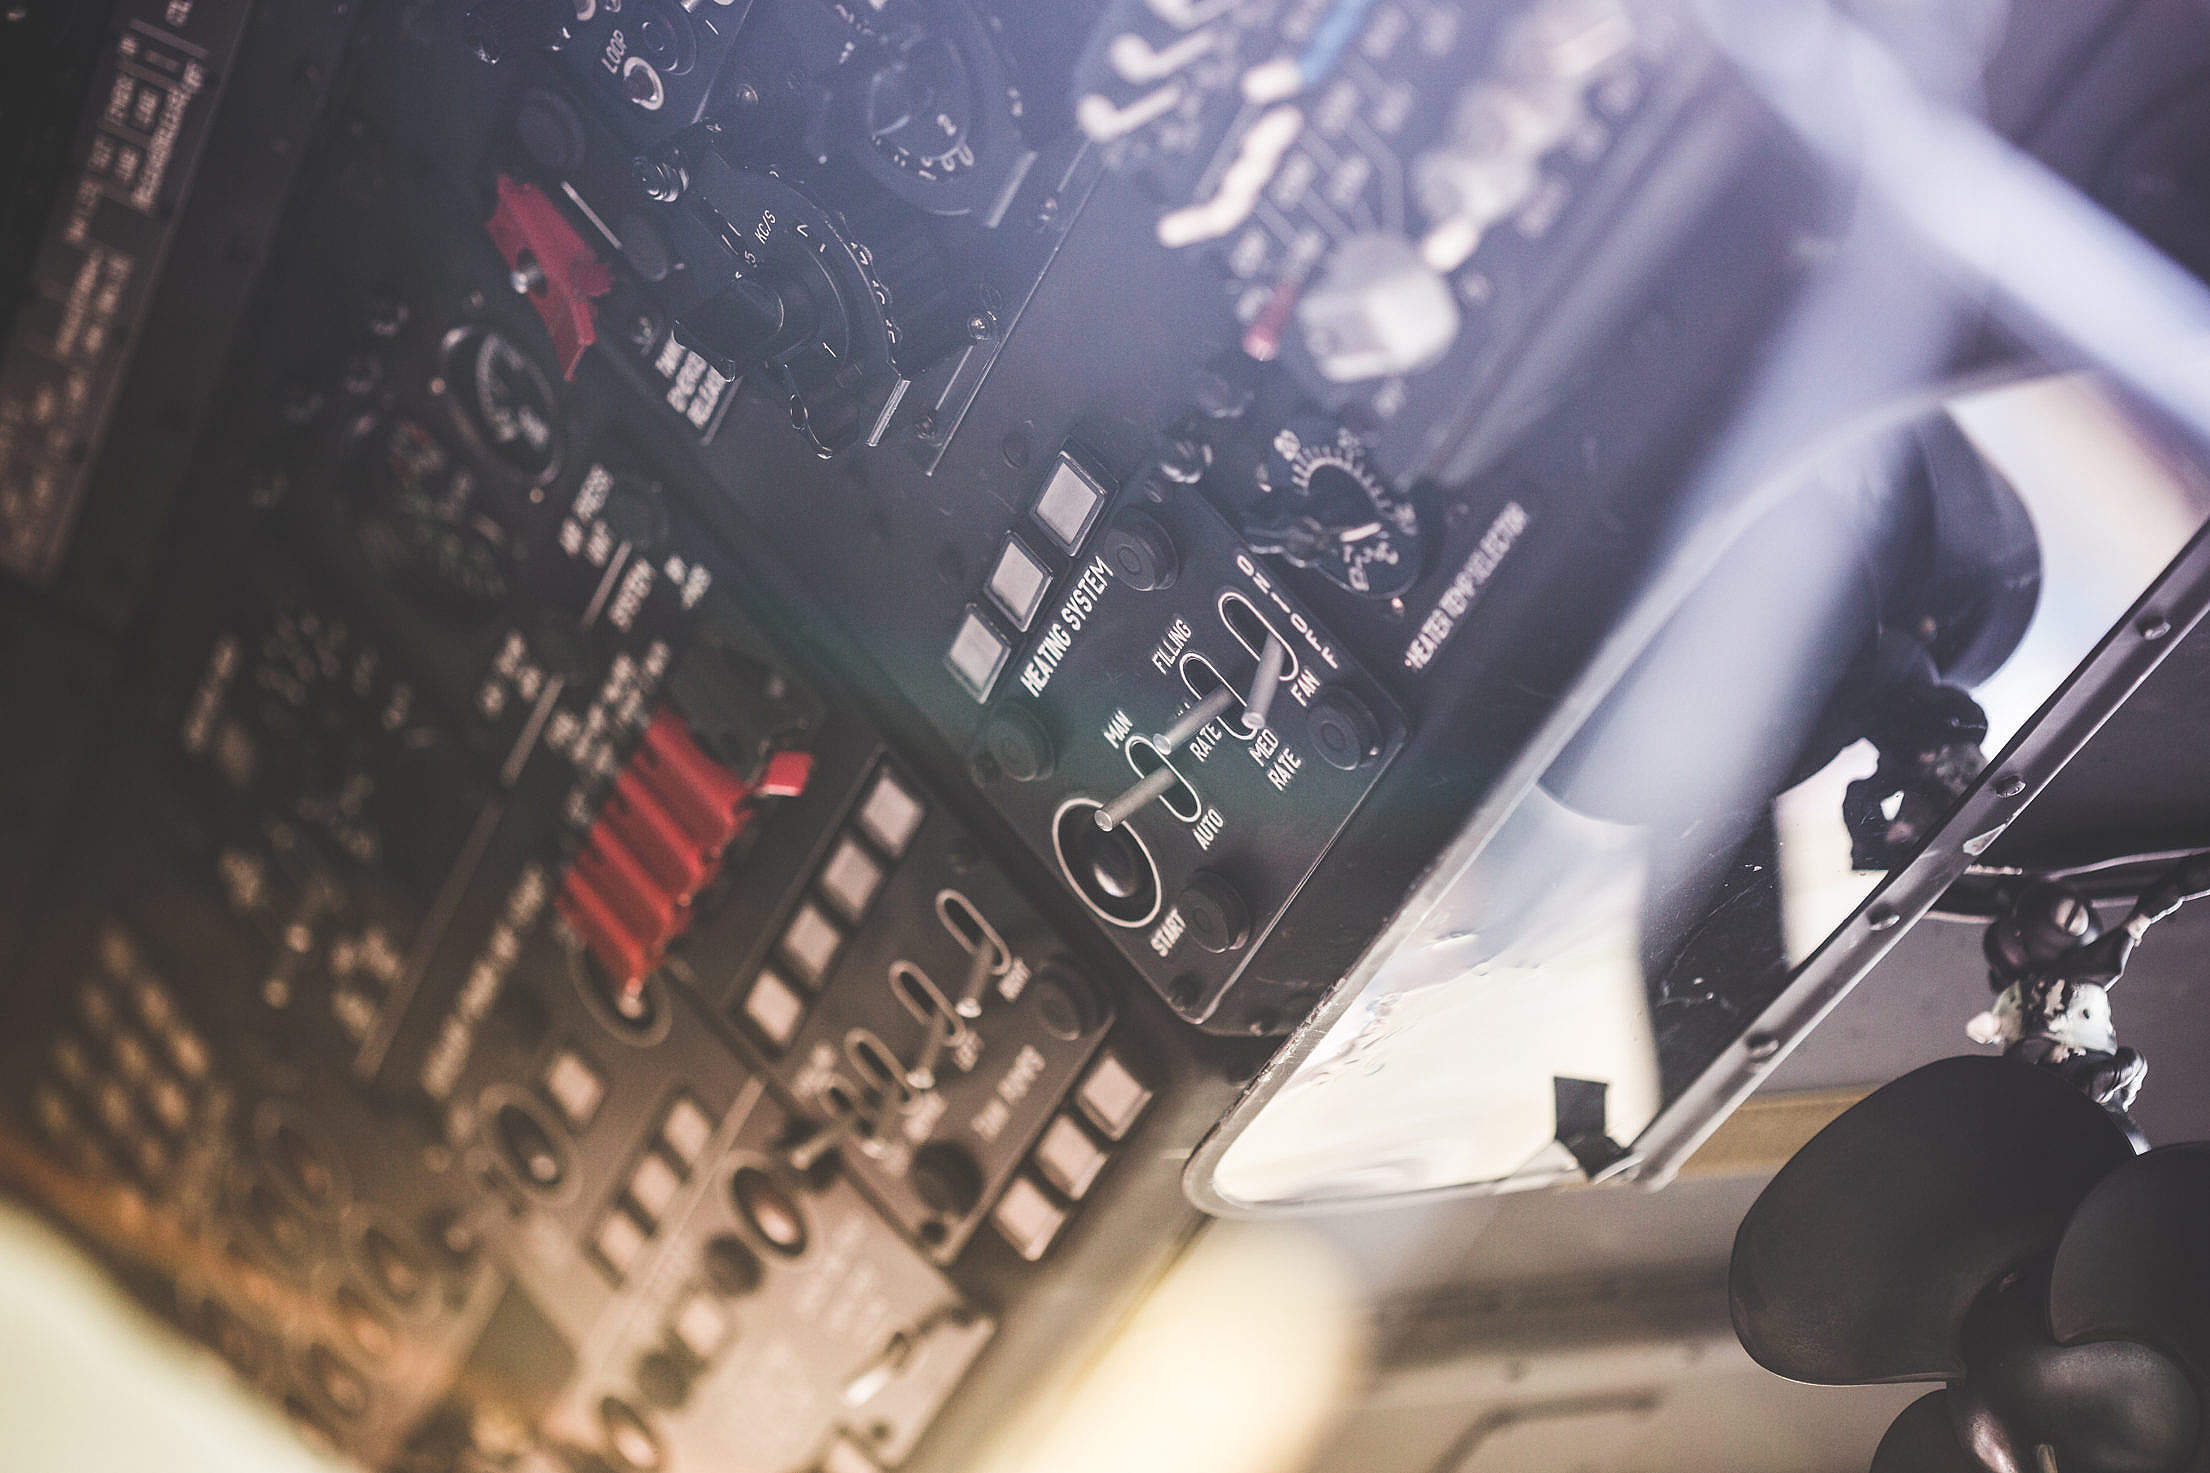 Army Helicopter Over Head Cockpit Dashboard Free Stock Photo